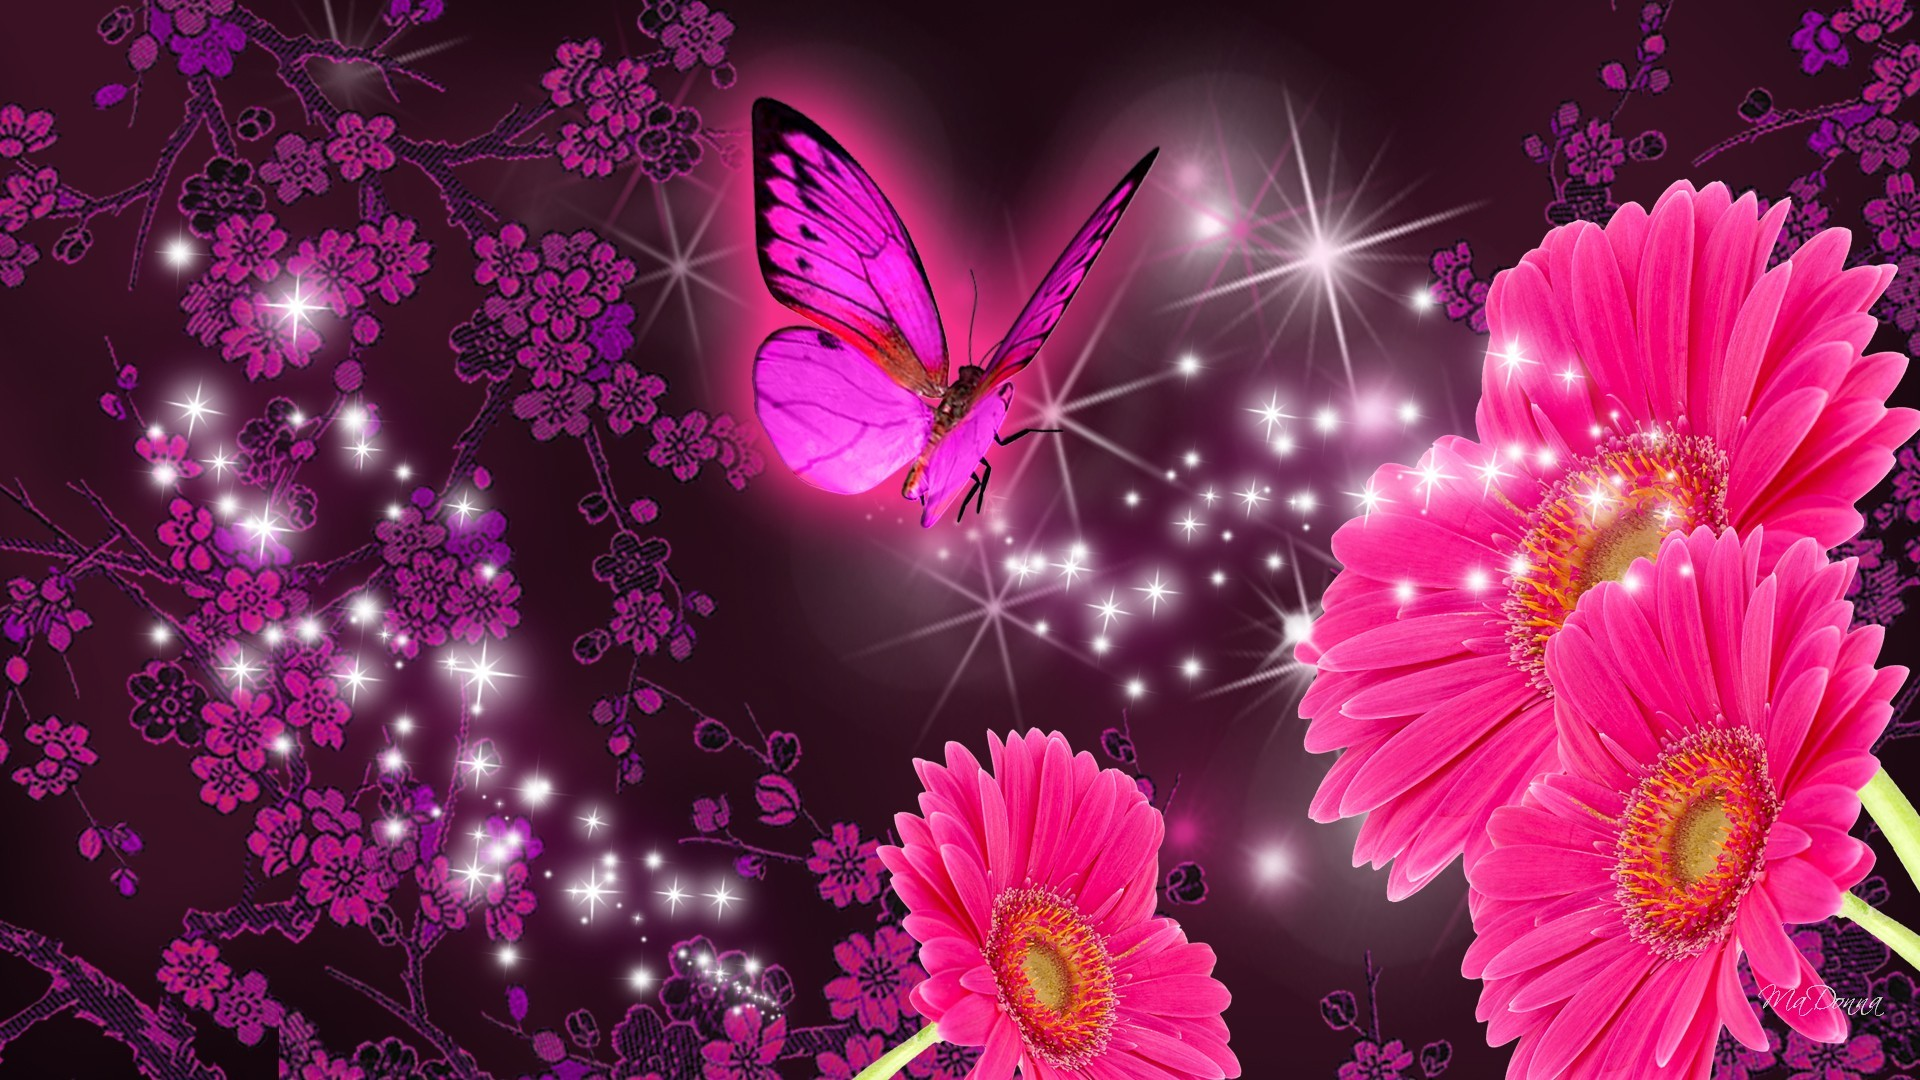 5. purple-and-pink-wallpaper4-600×338